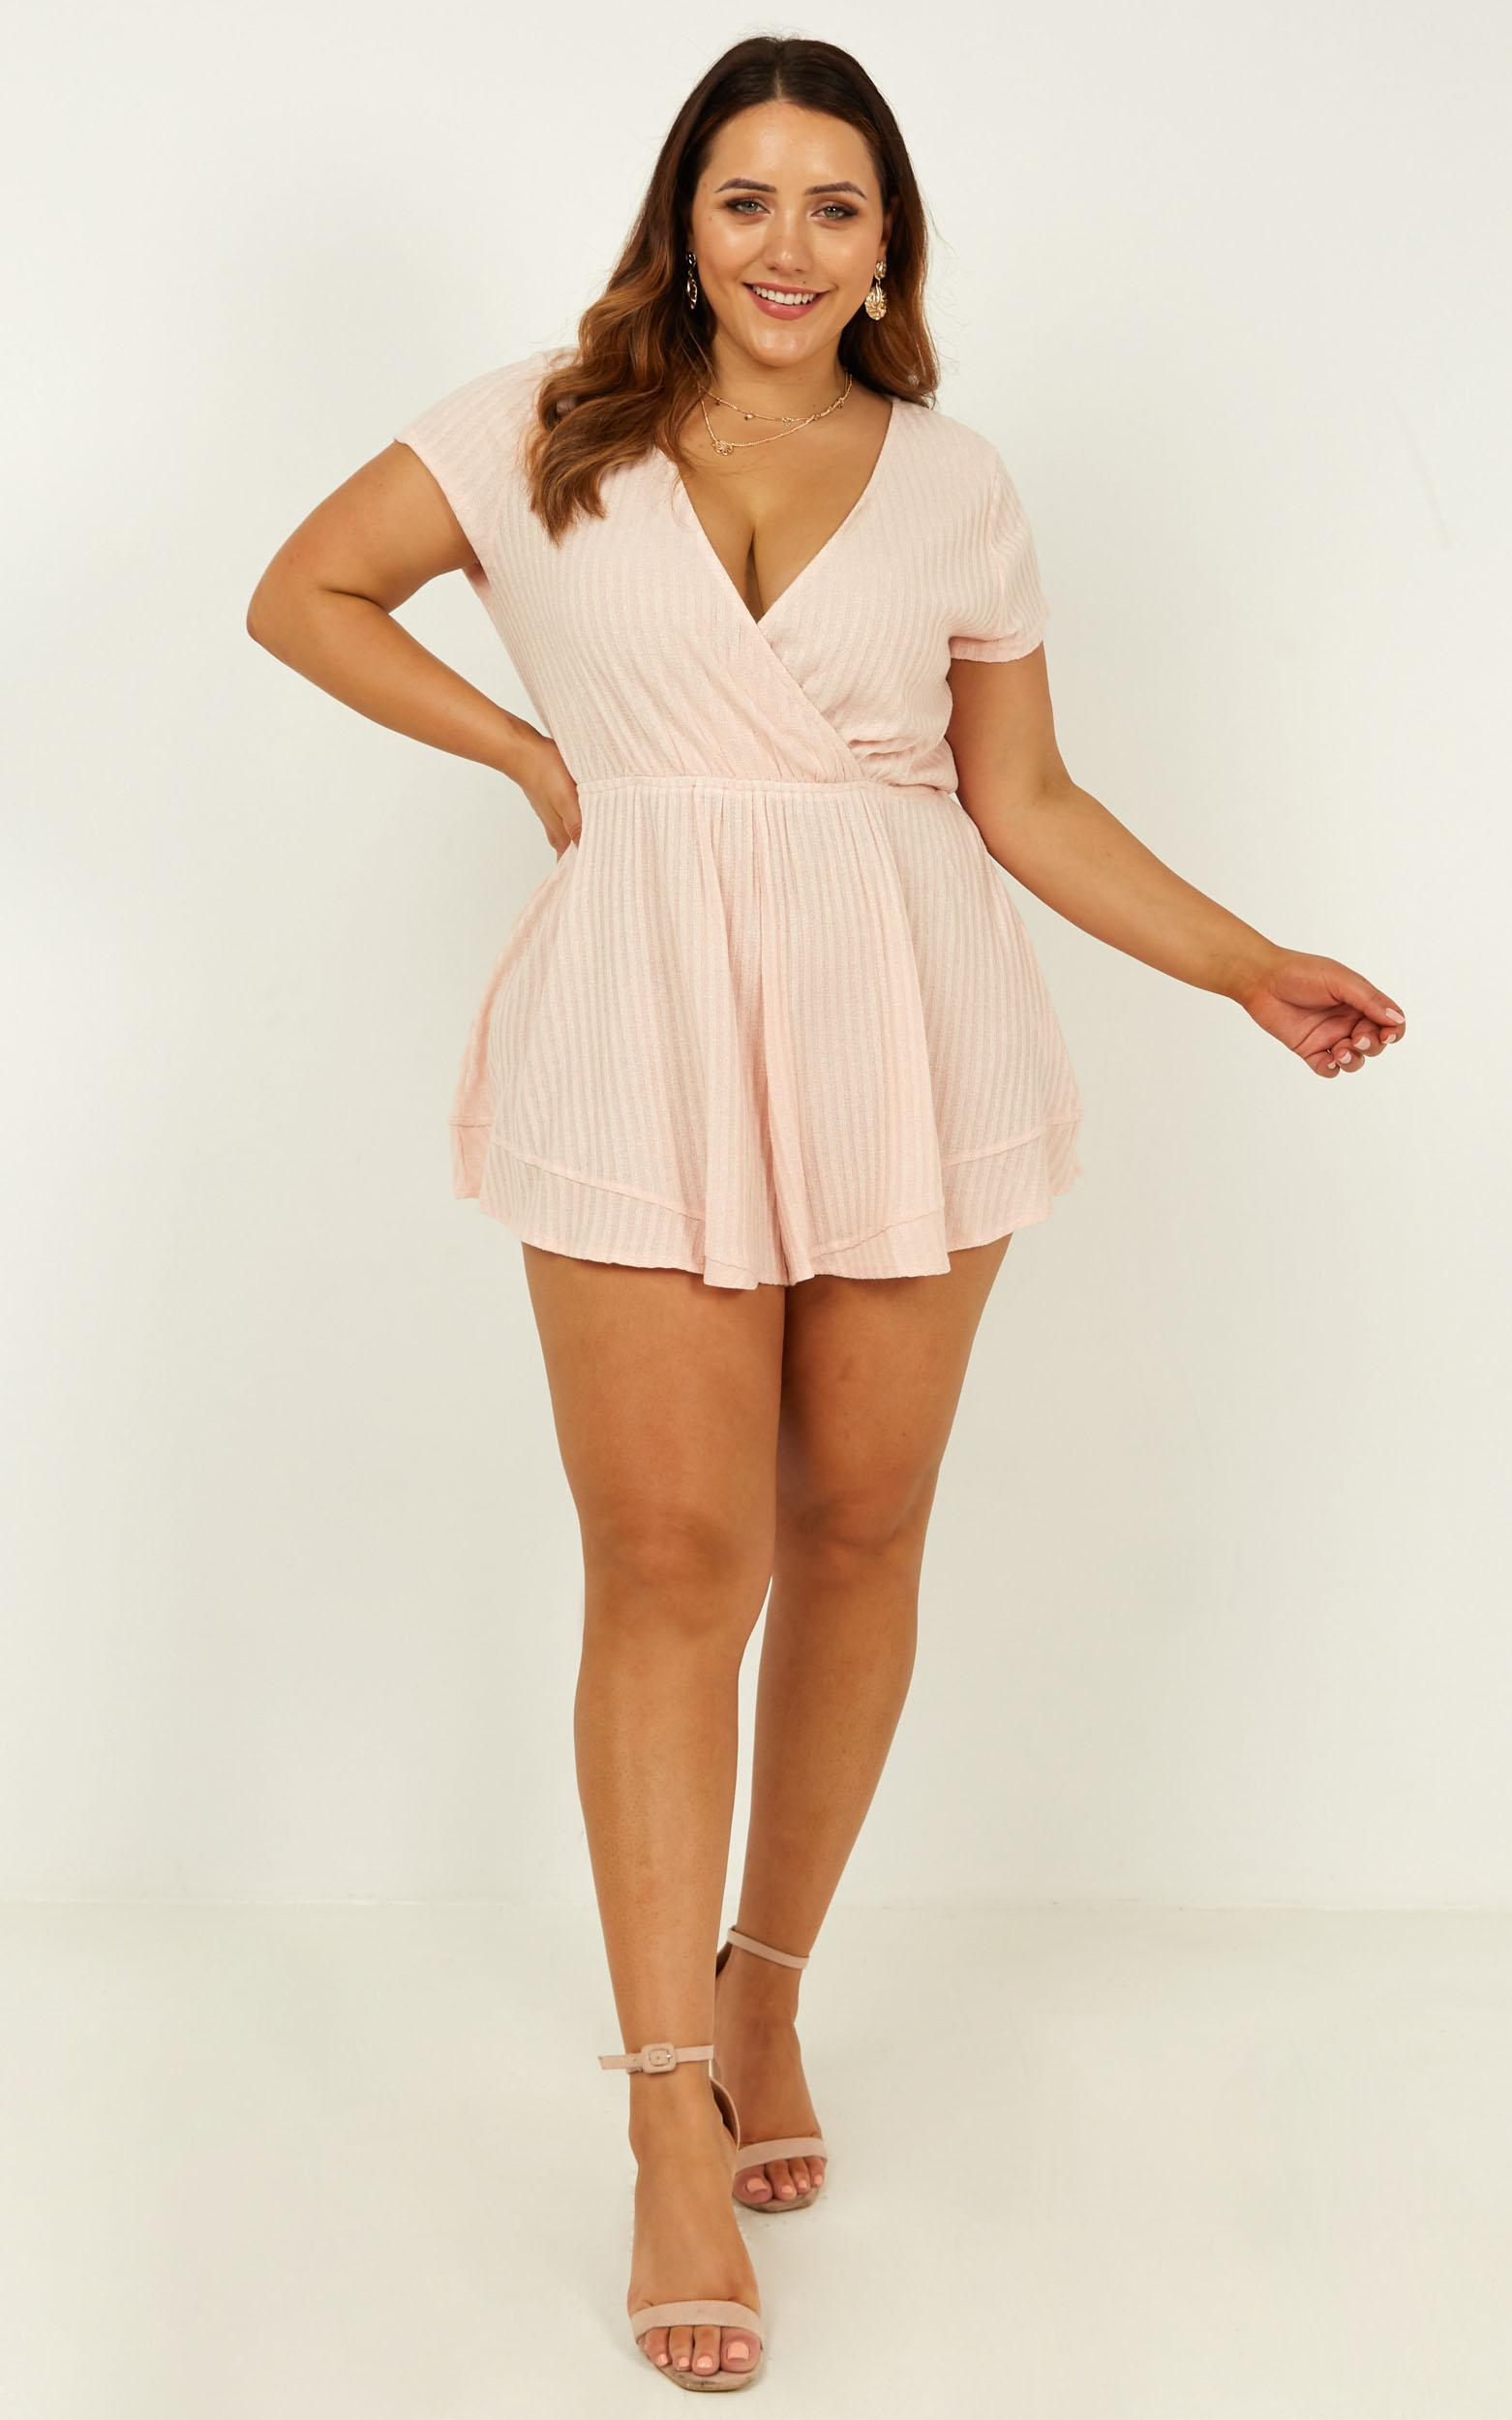 Stay or go Playsuit in blush - 20 (XXXXL), Blush, hi-res image number null